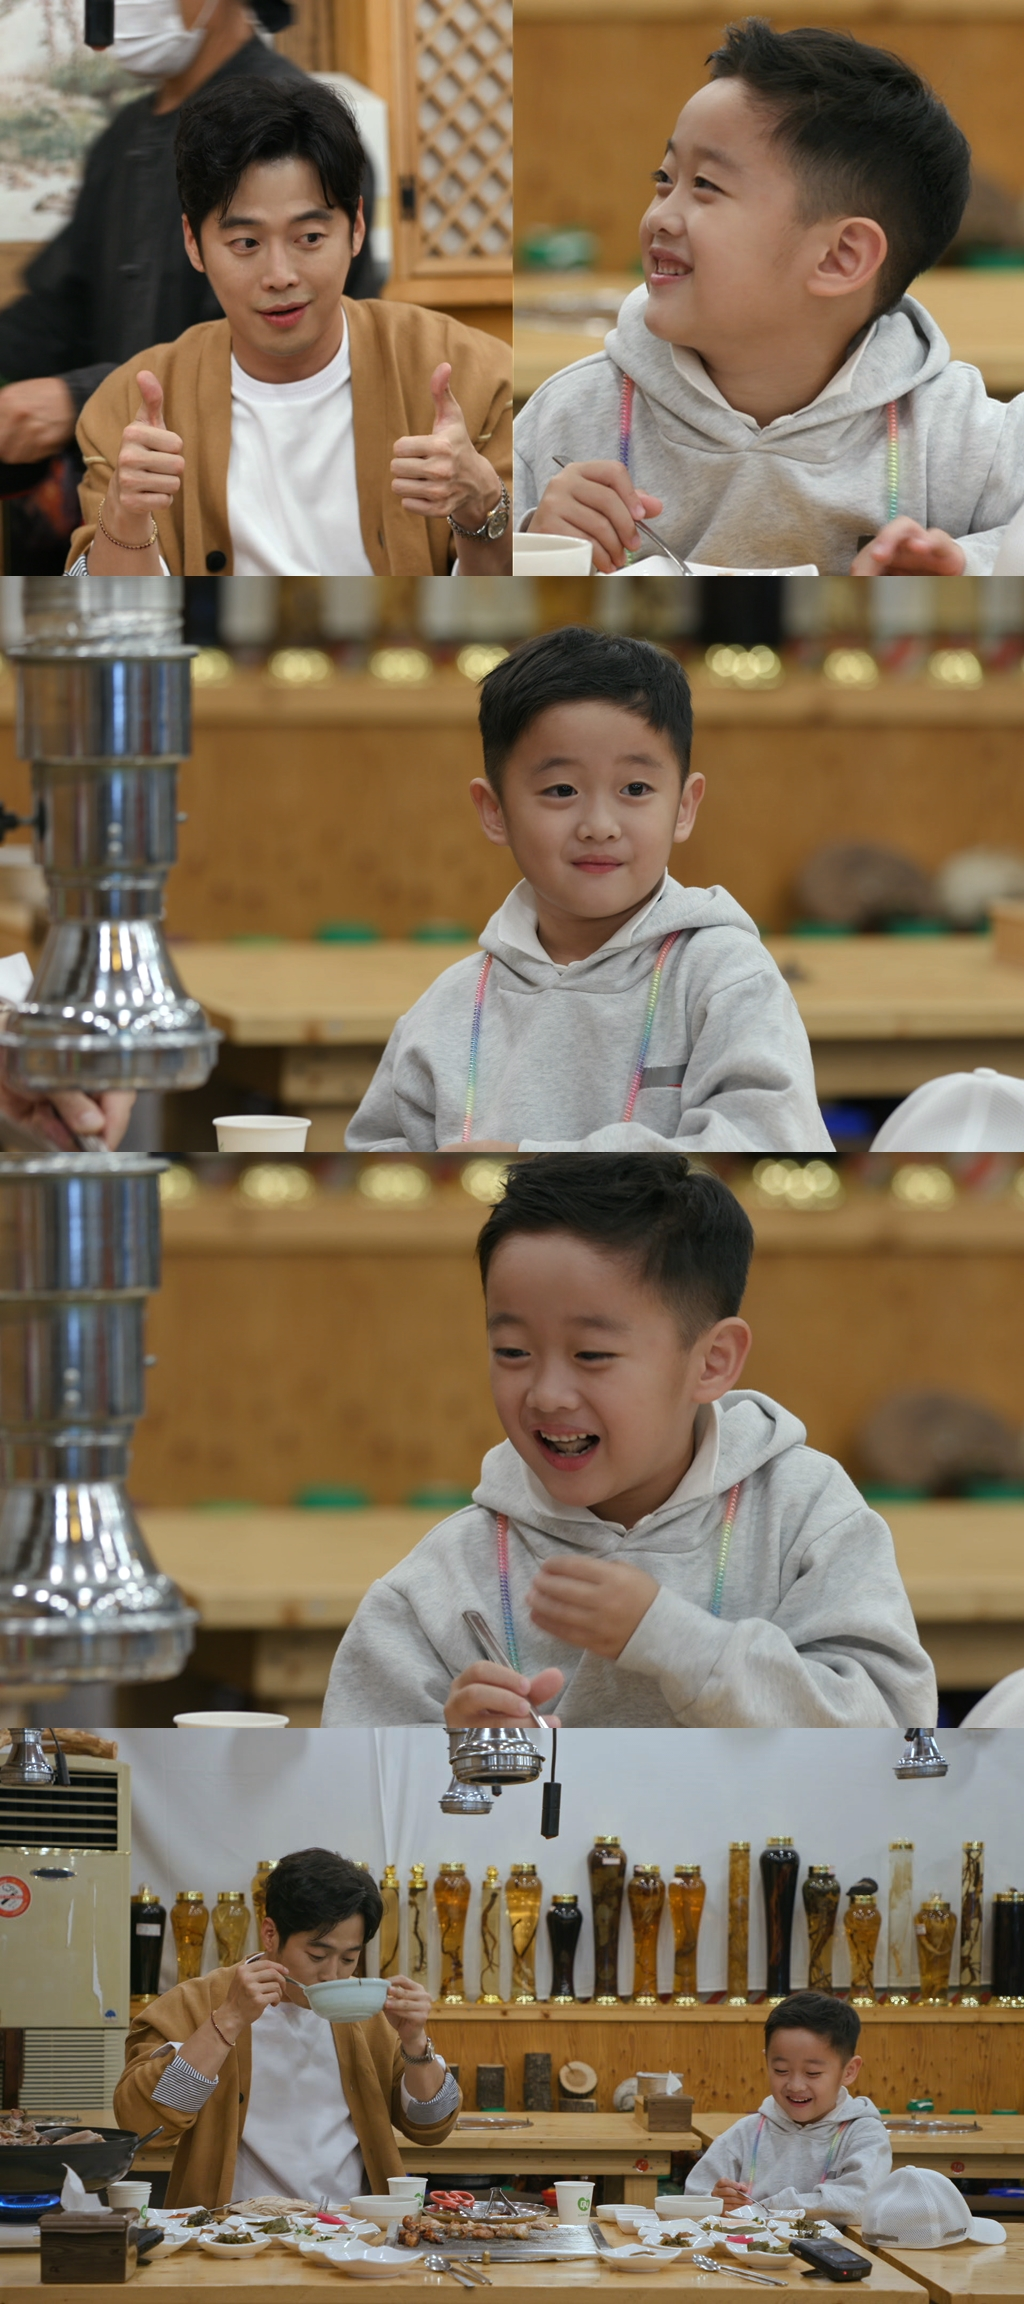 'Stars' Top Recipe at Fun-Staurant' Kim Jae-won's son, Yi-Joon, and his father's 'winning smile'